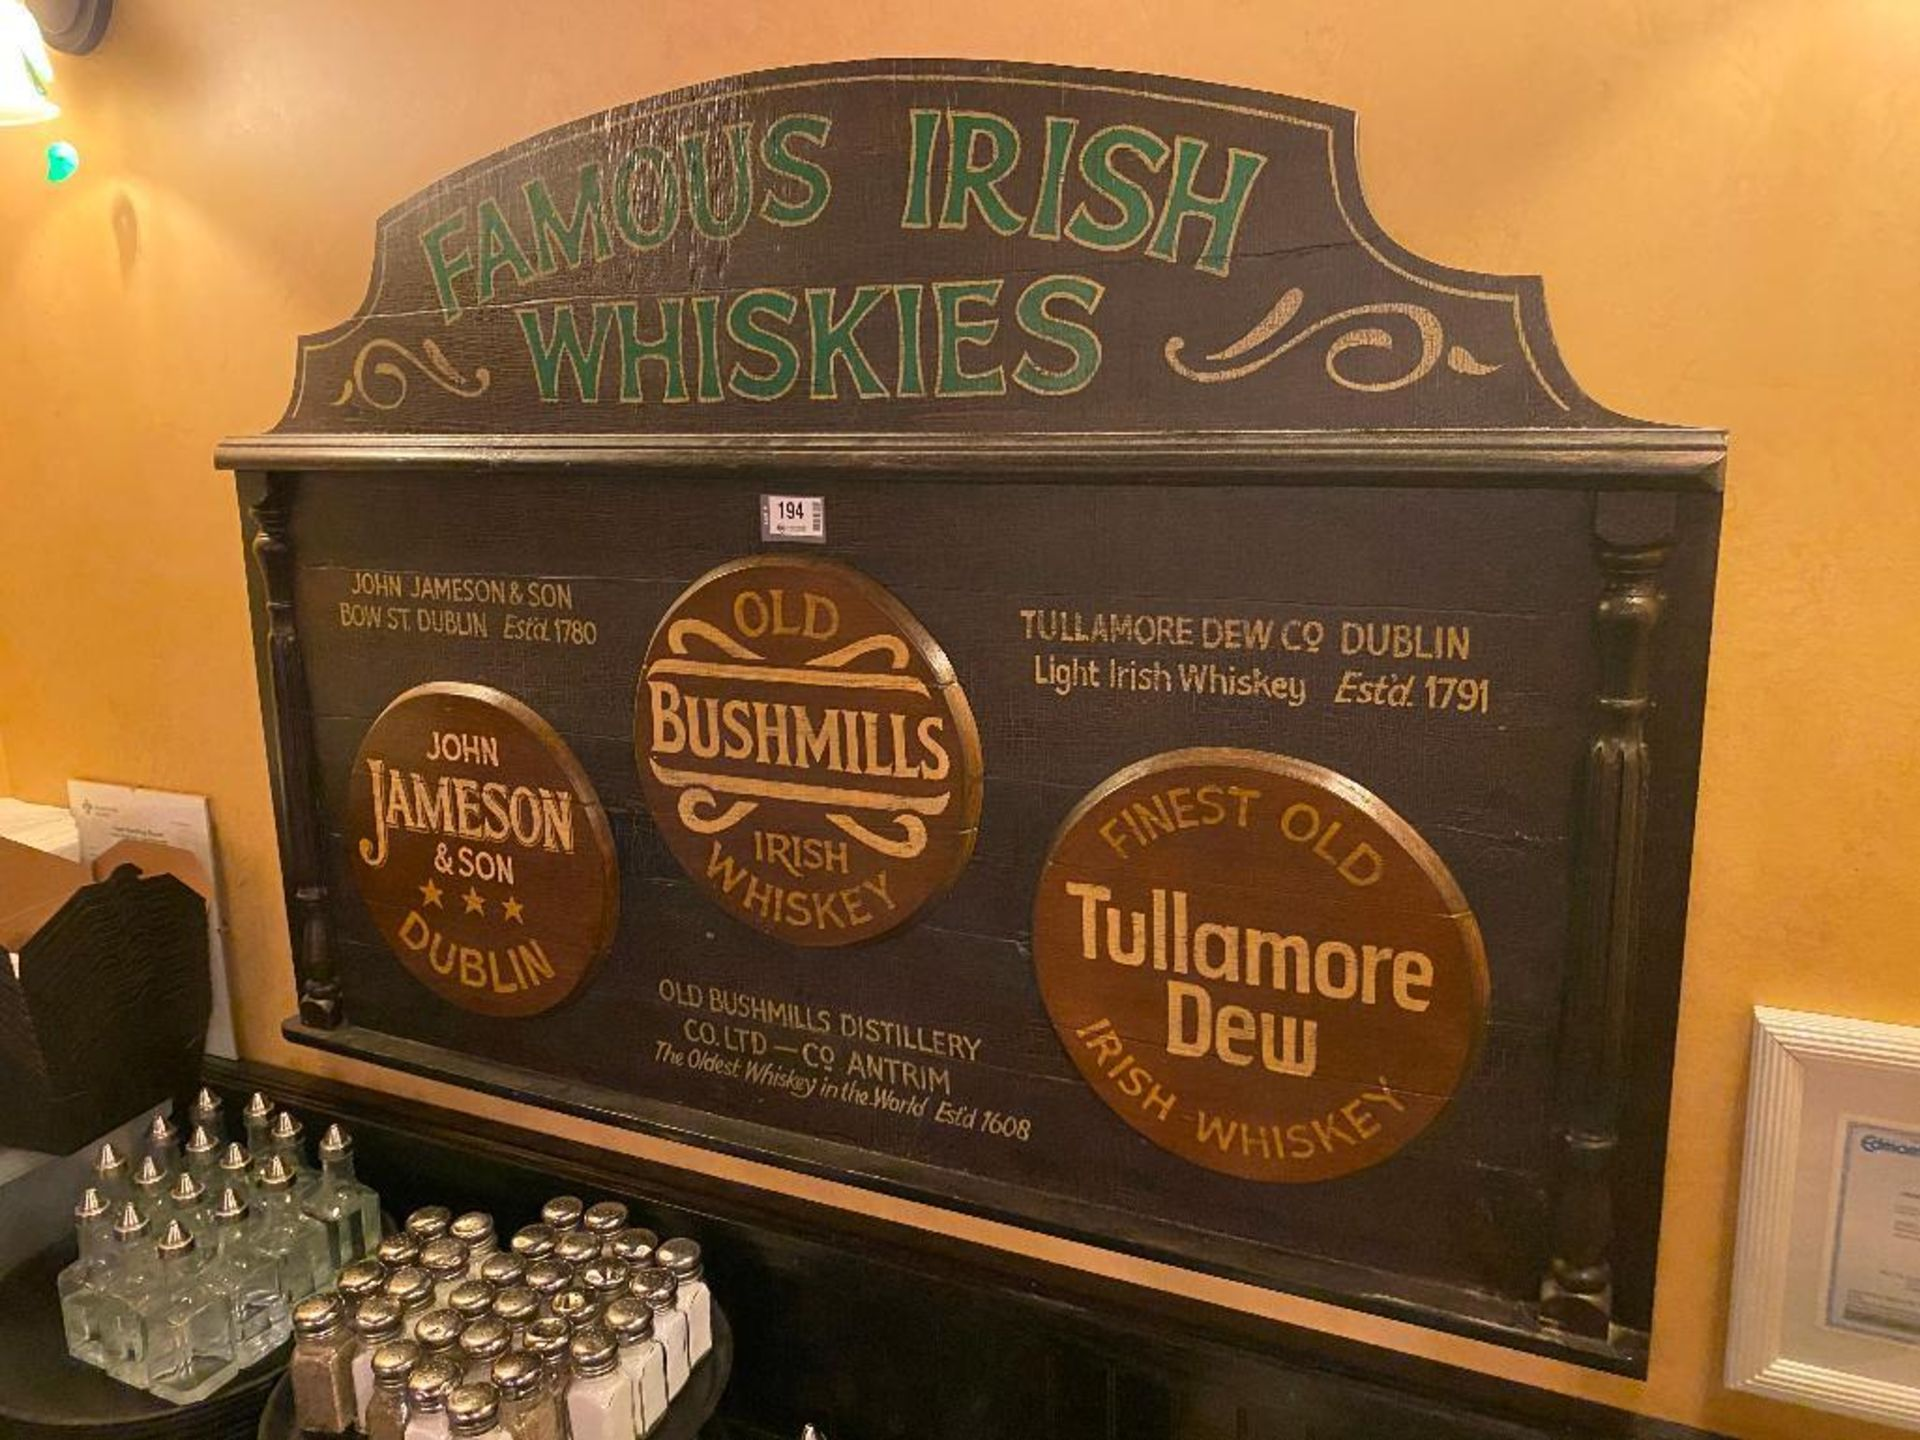 FAMOUS IRISH WHISKIES WOODEN PLAQUE - NOTE: REQUIRES REMOVAL FROM WALL, PLEASE INSPECT - Image 2 of 2